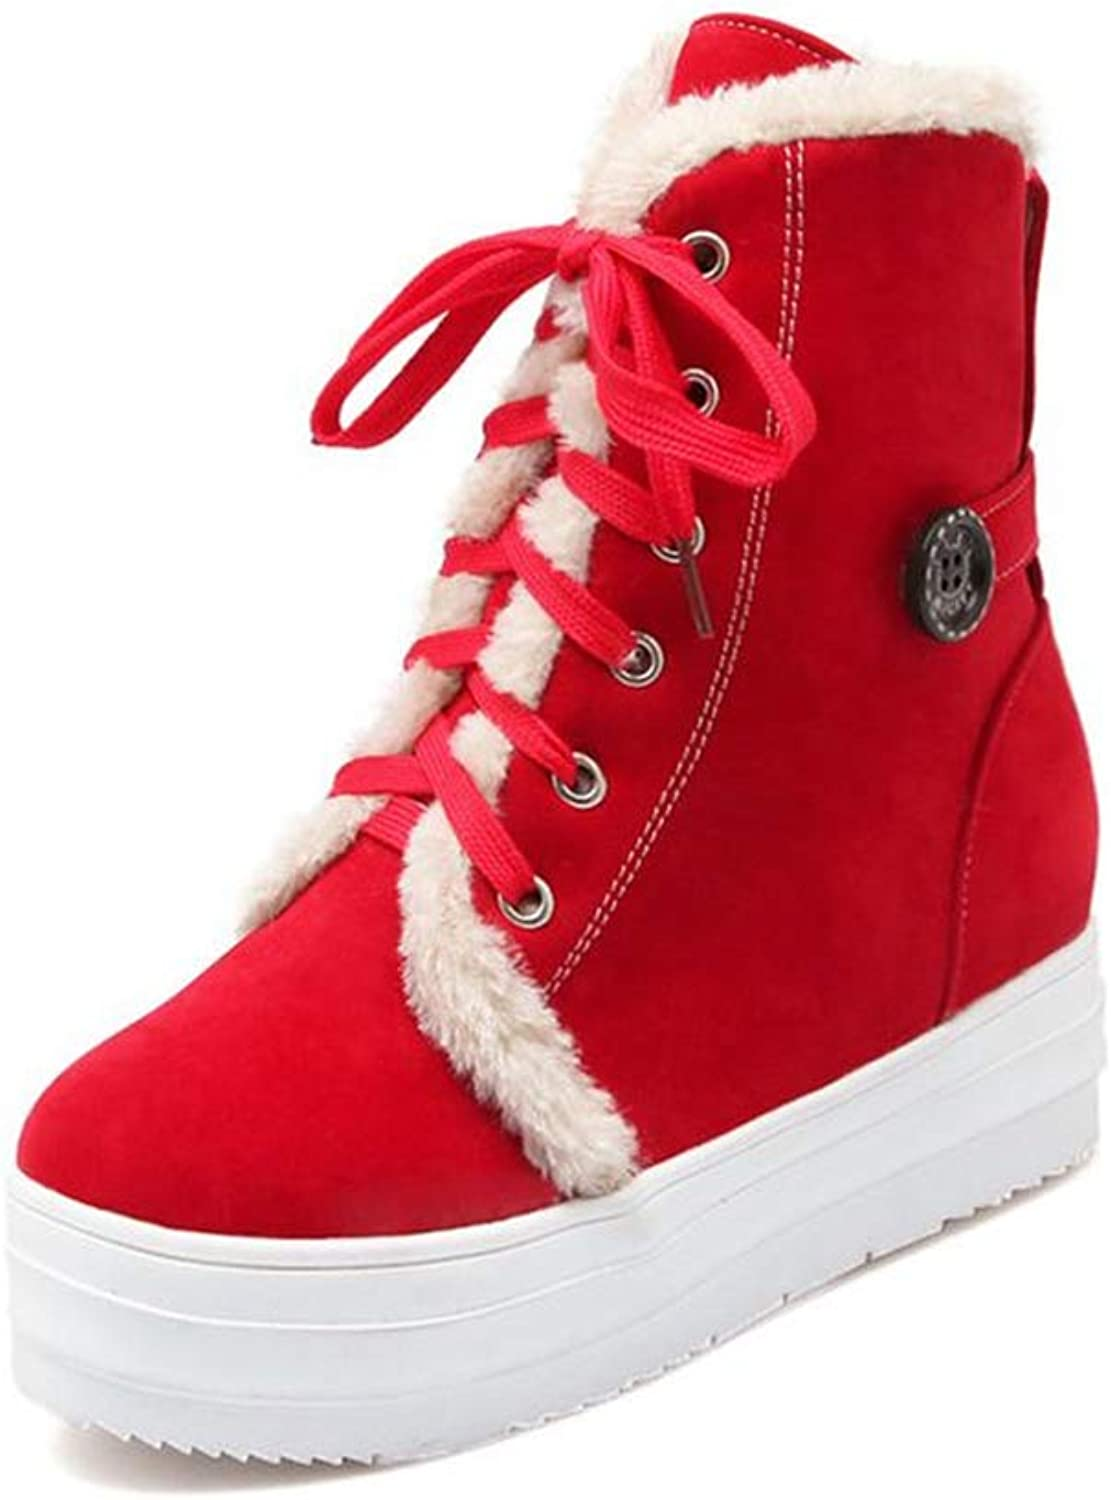 pink town Women's Winter lace up Snow Boots Waterproof shoes